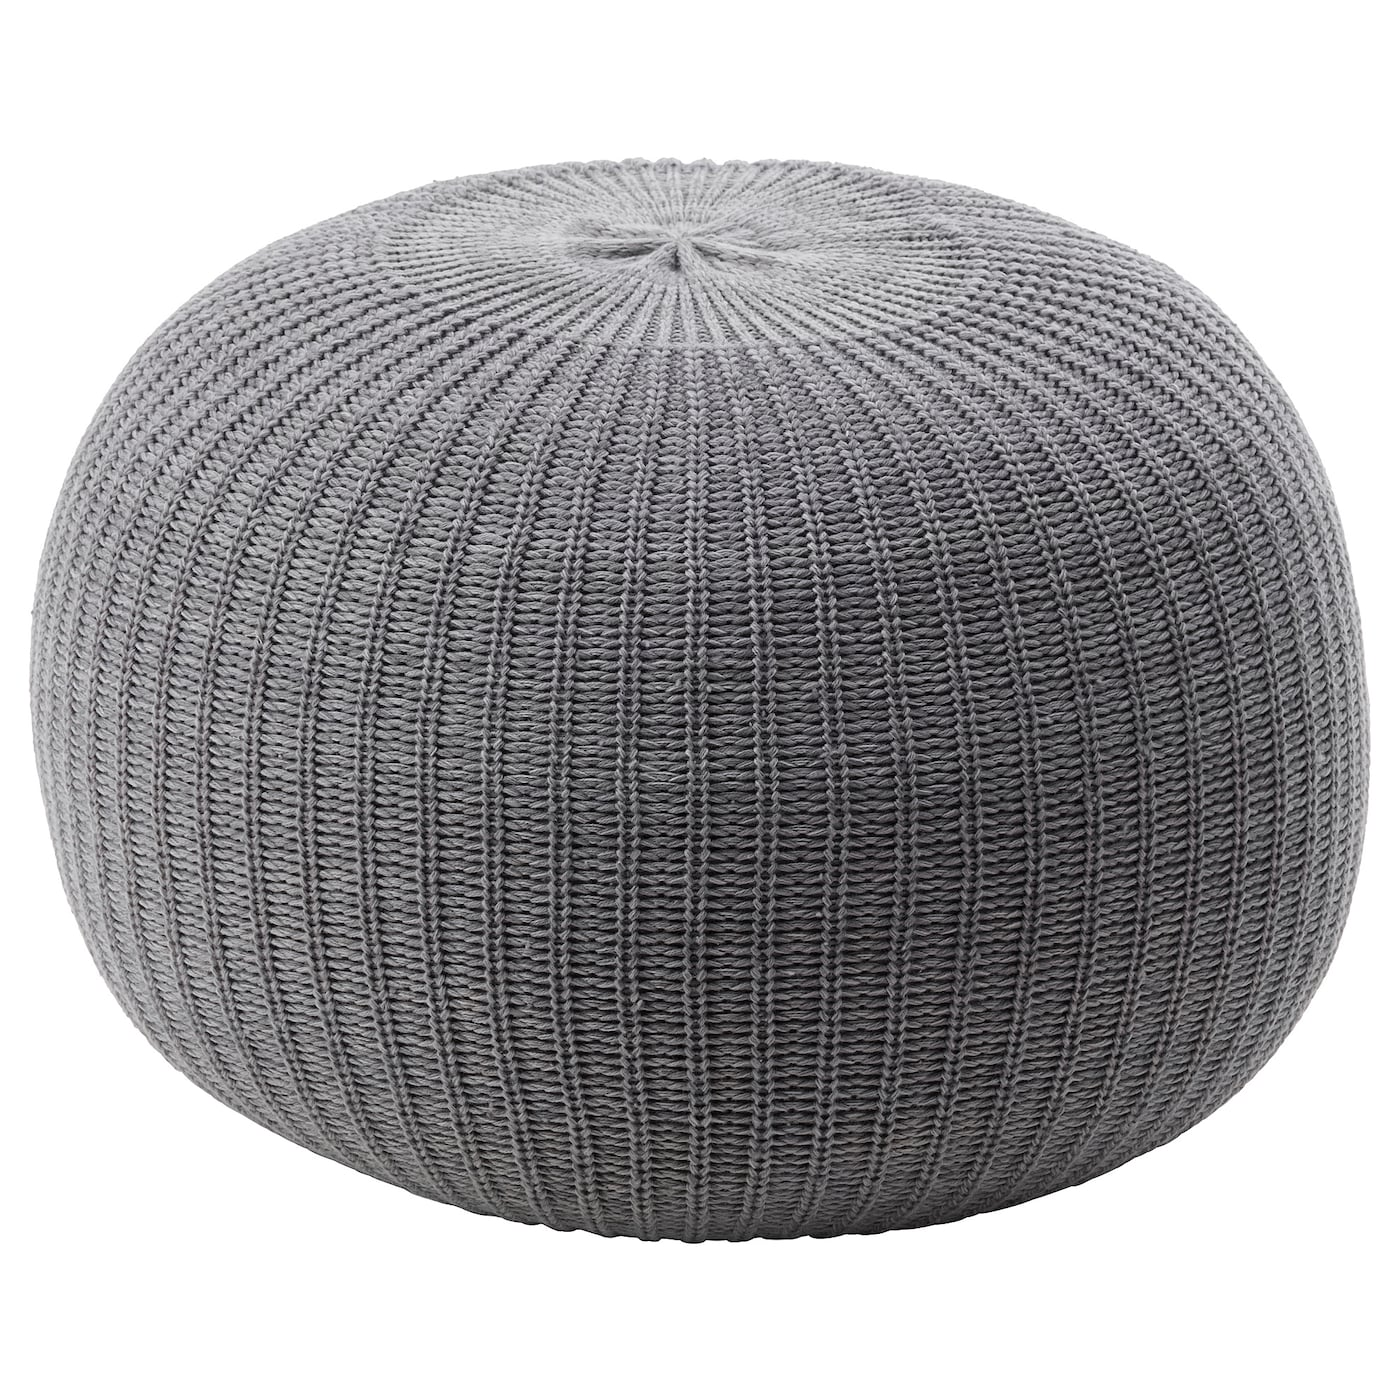 IKEA SANDARED pouffe The cover is easy-care since it can be removed and machine washed.